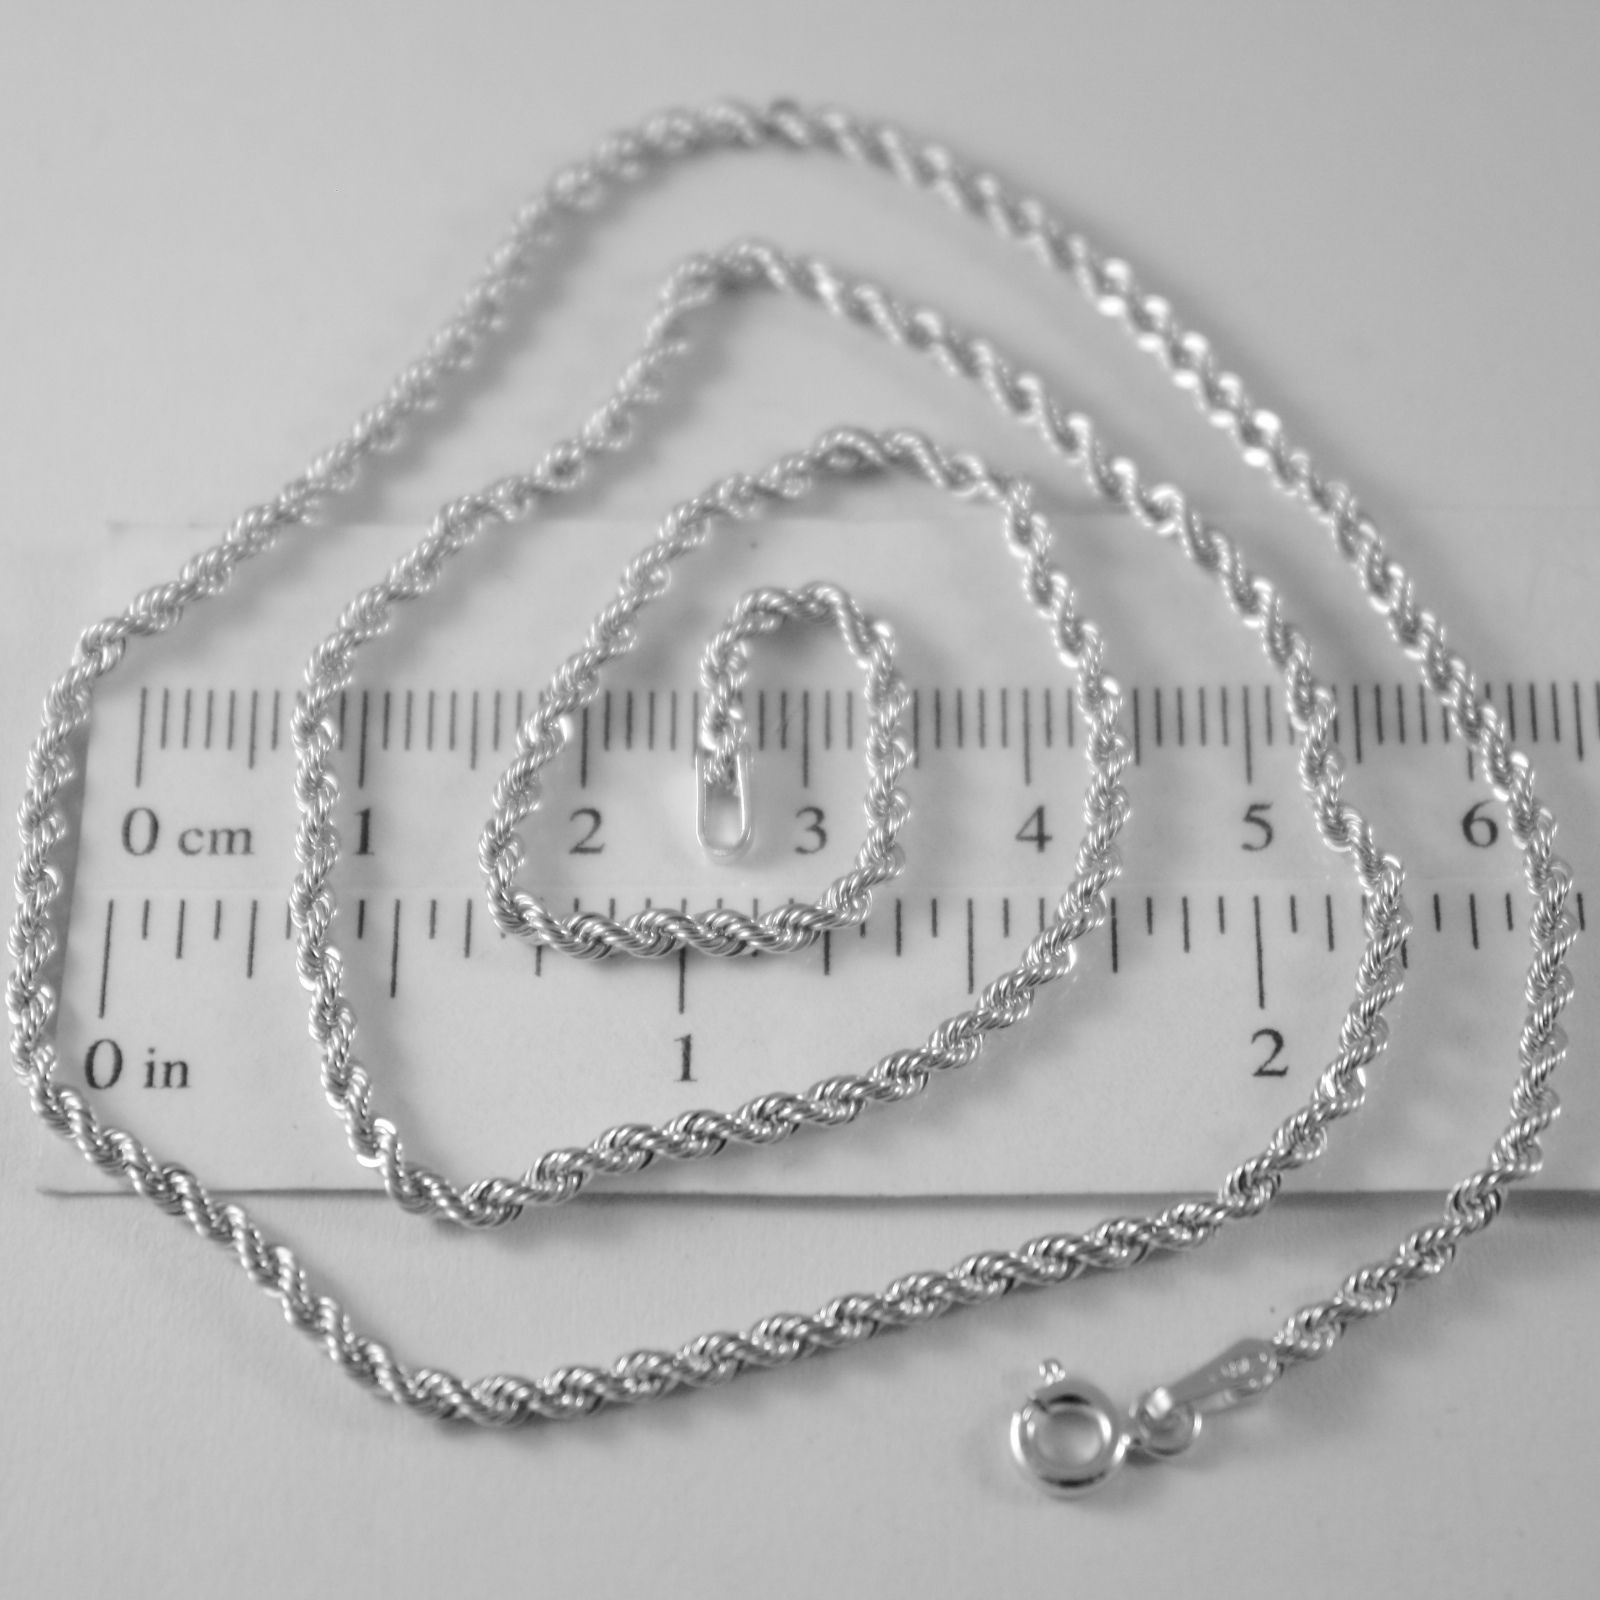 CHAIN WOVEN ROPE WHITE GOLD 750 18K, 40 45 50 60 CM, THICKNESS 2.5 MM